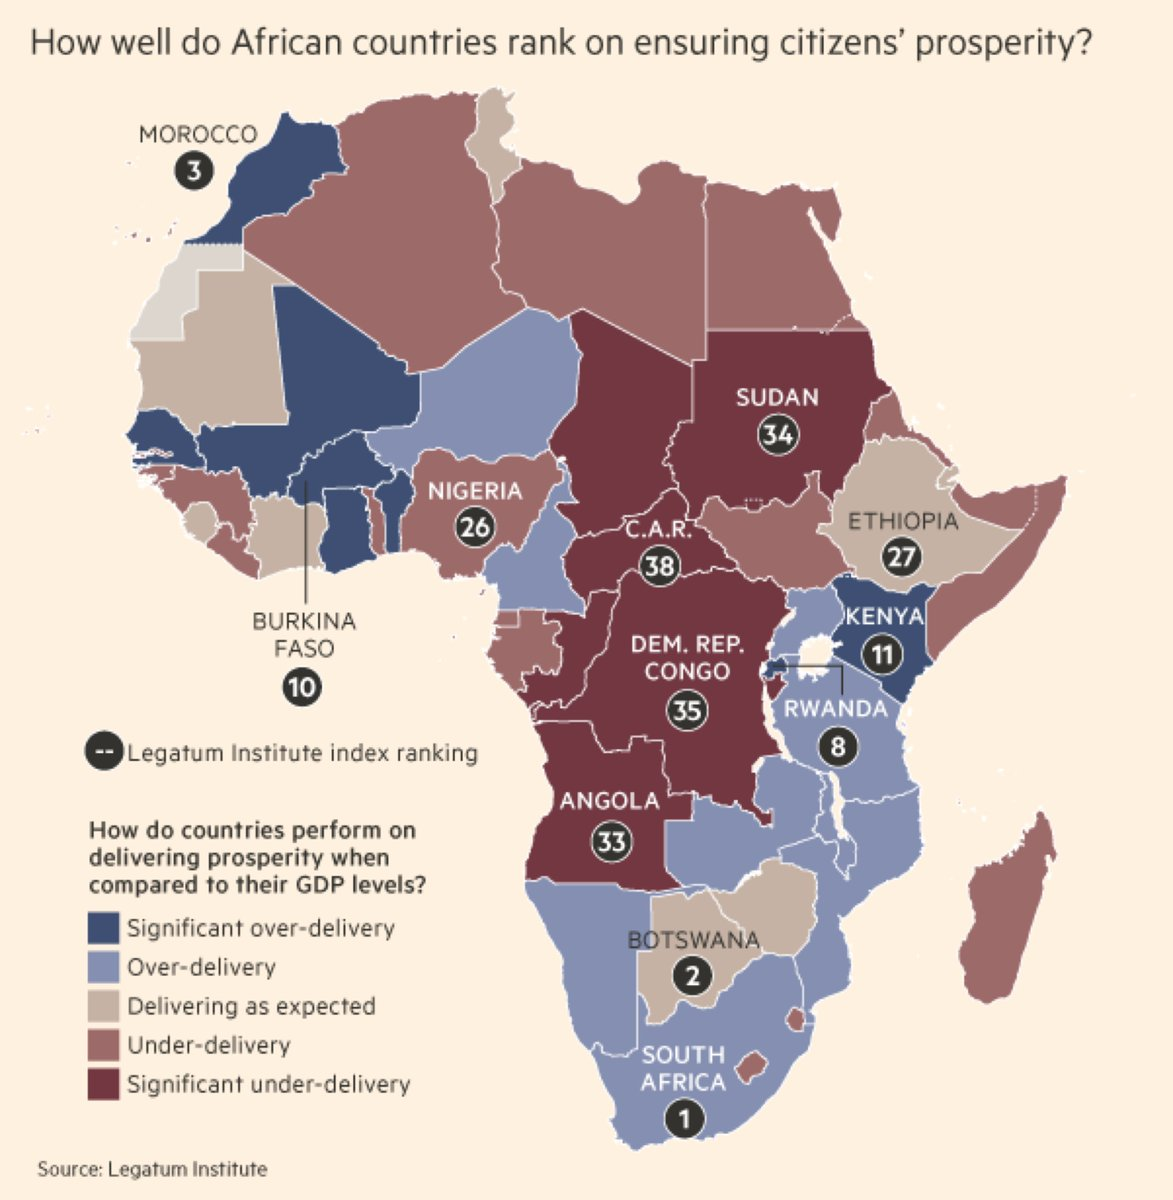 Most prosperous in SSA #AfricaProsperity index: 1. South Africa 2. Bostwana 3. Namibia 4. Senegal 5. Rwanda 6. Ghana https://t.co/ABoca8Iri0